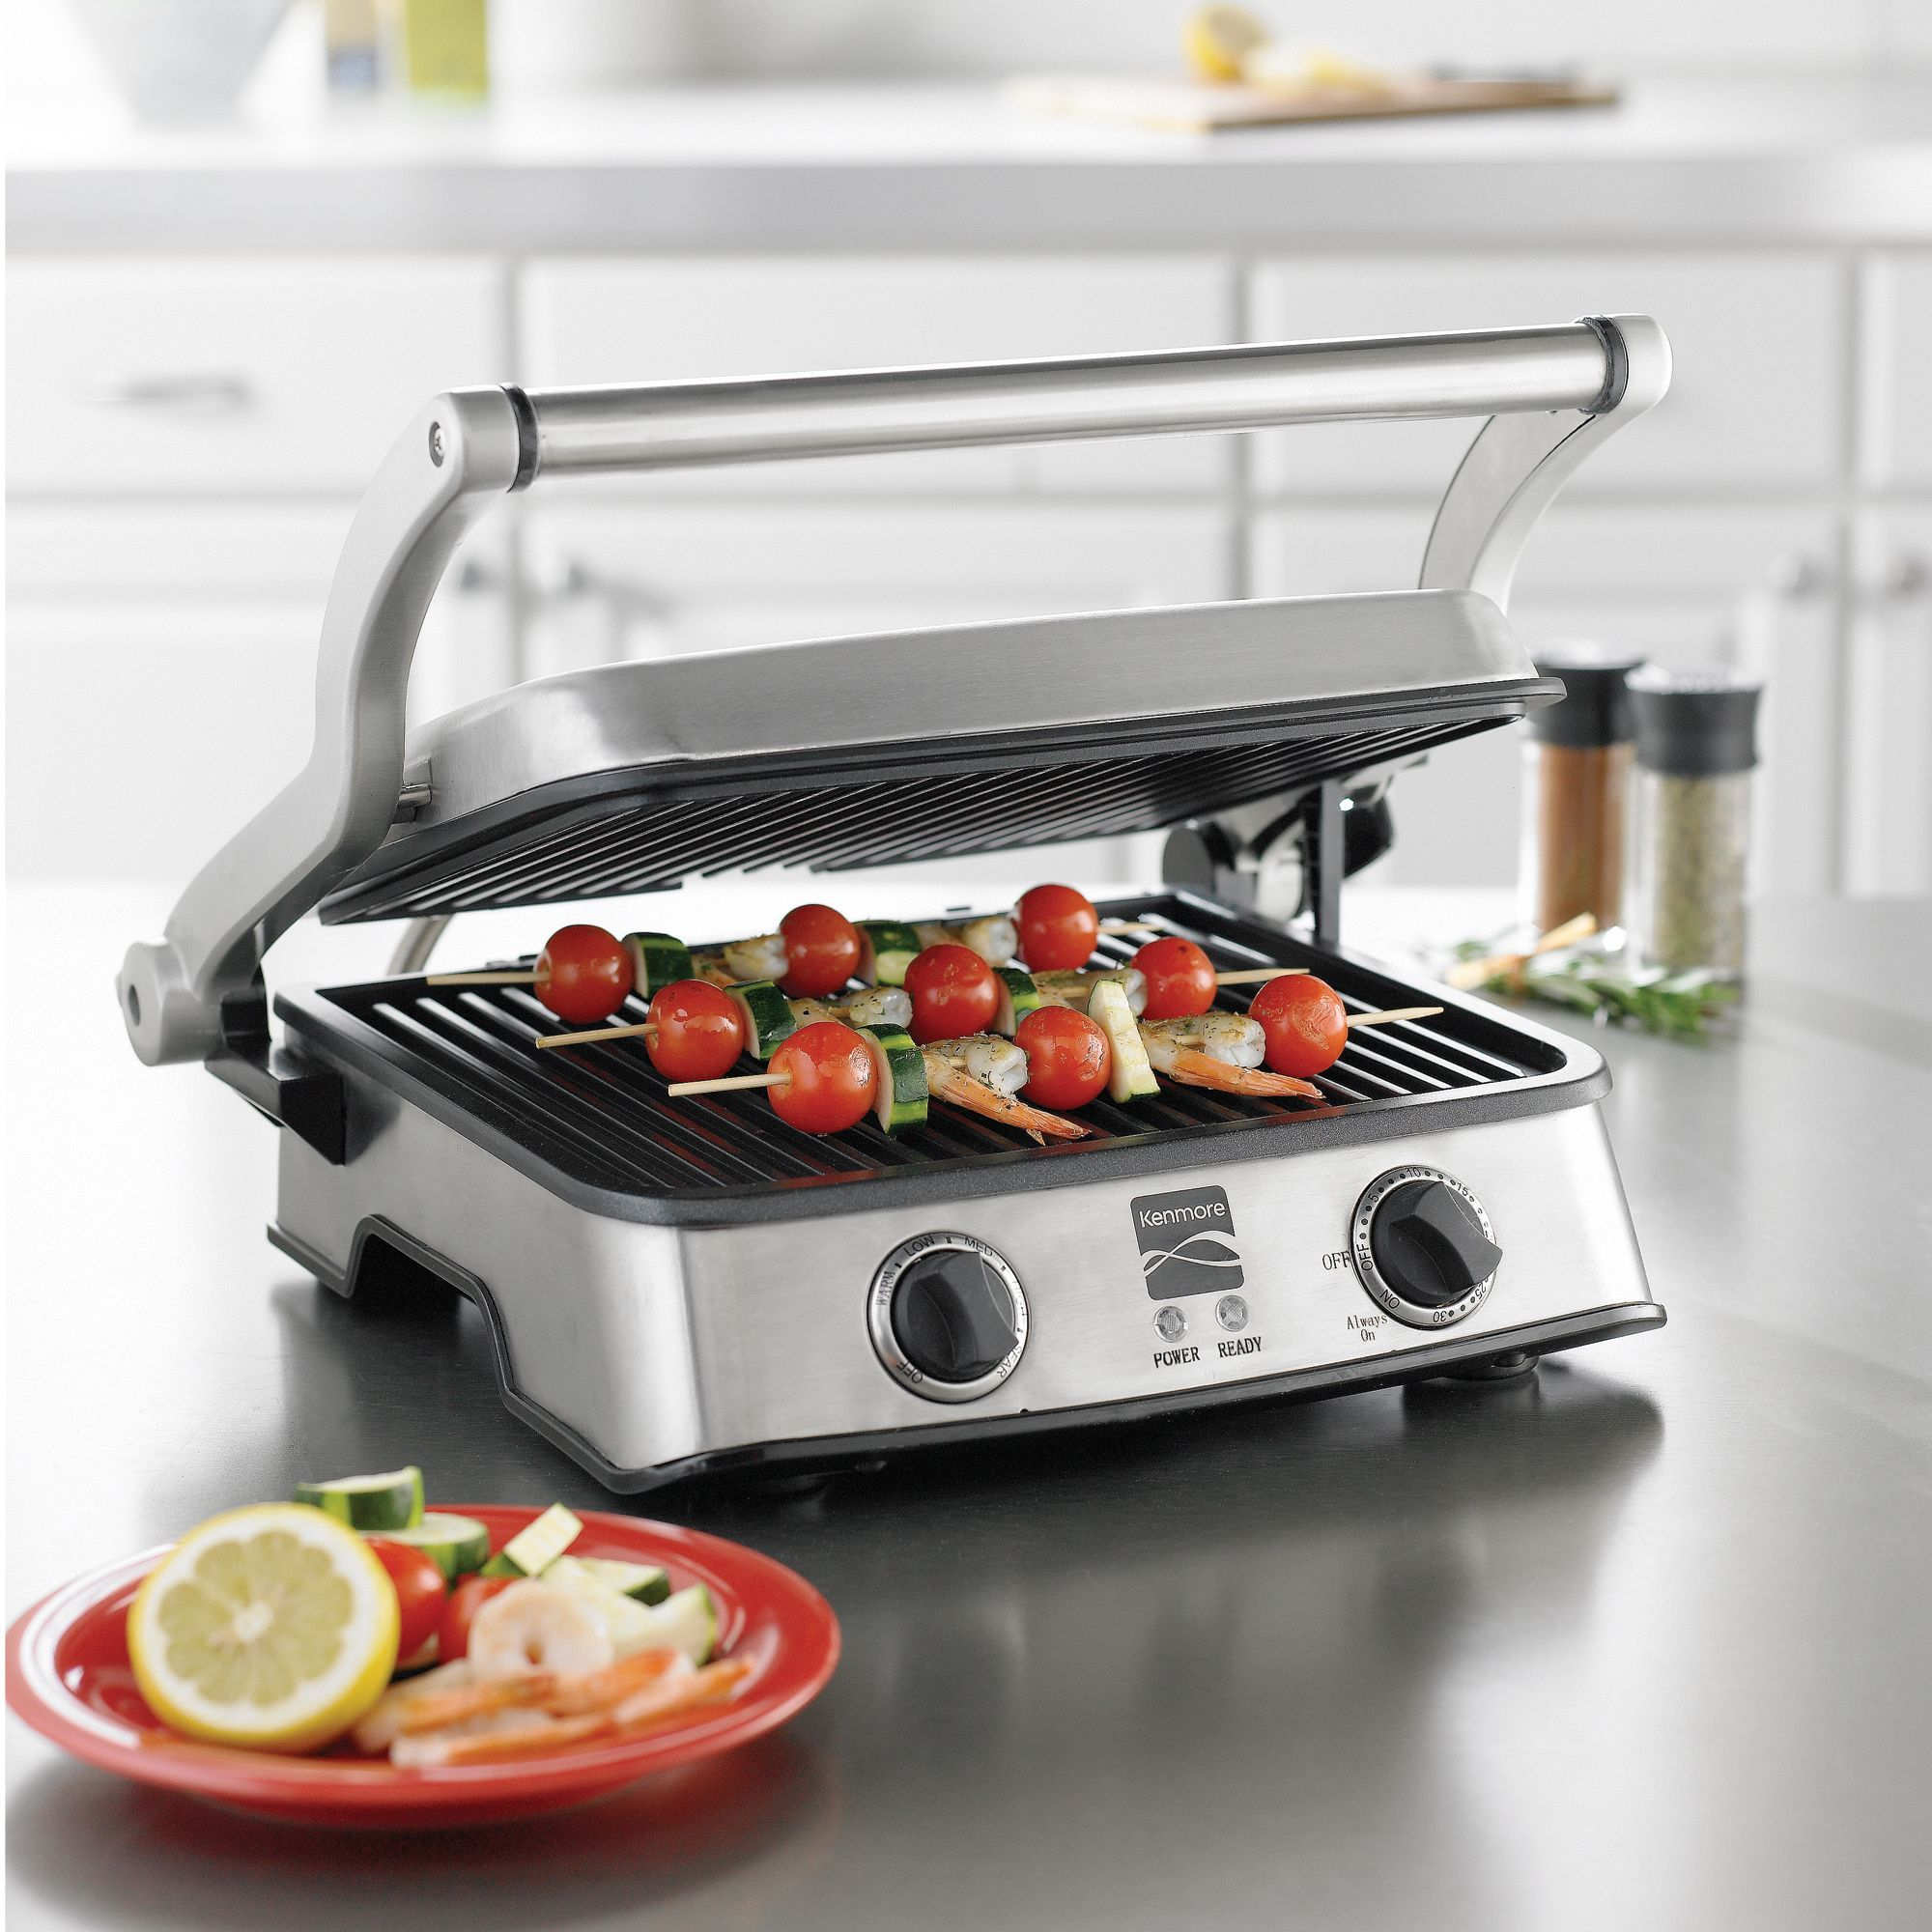 Food Network Grill And Griddle Set